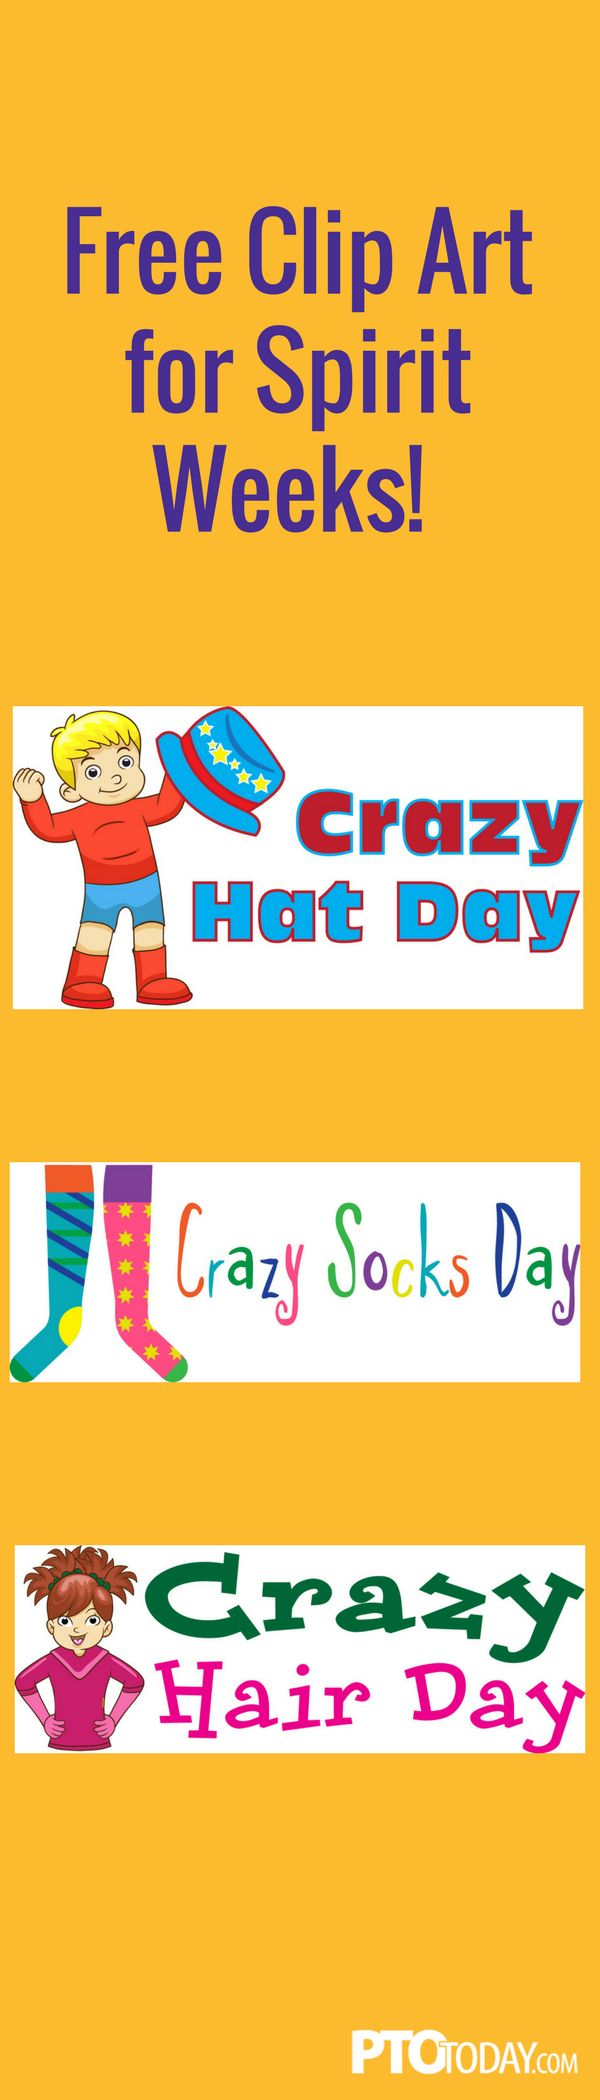 Use our free clip art to help promote Spirit Week at your school!